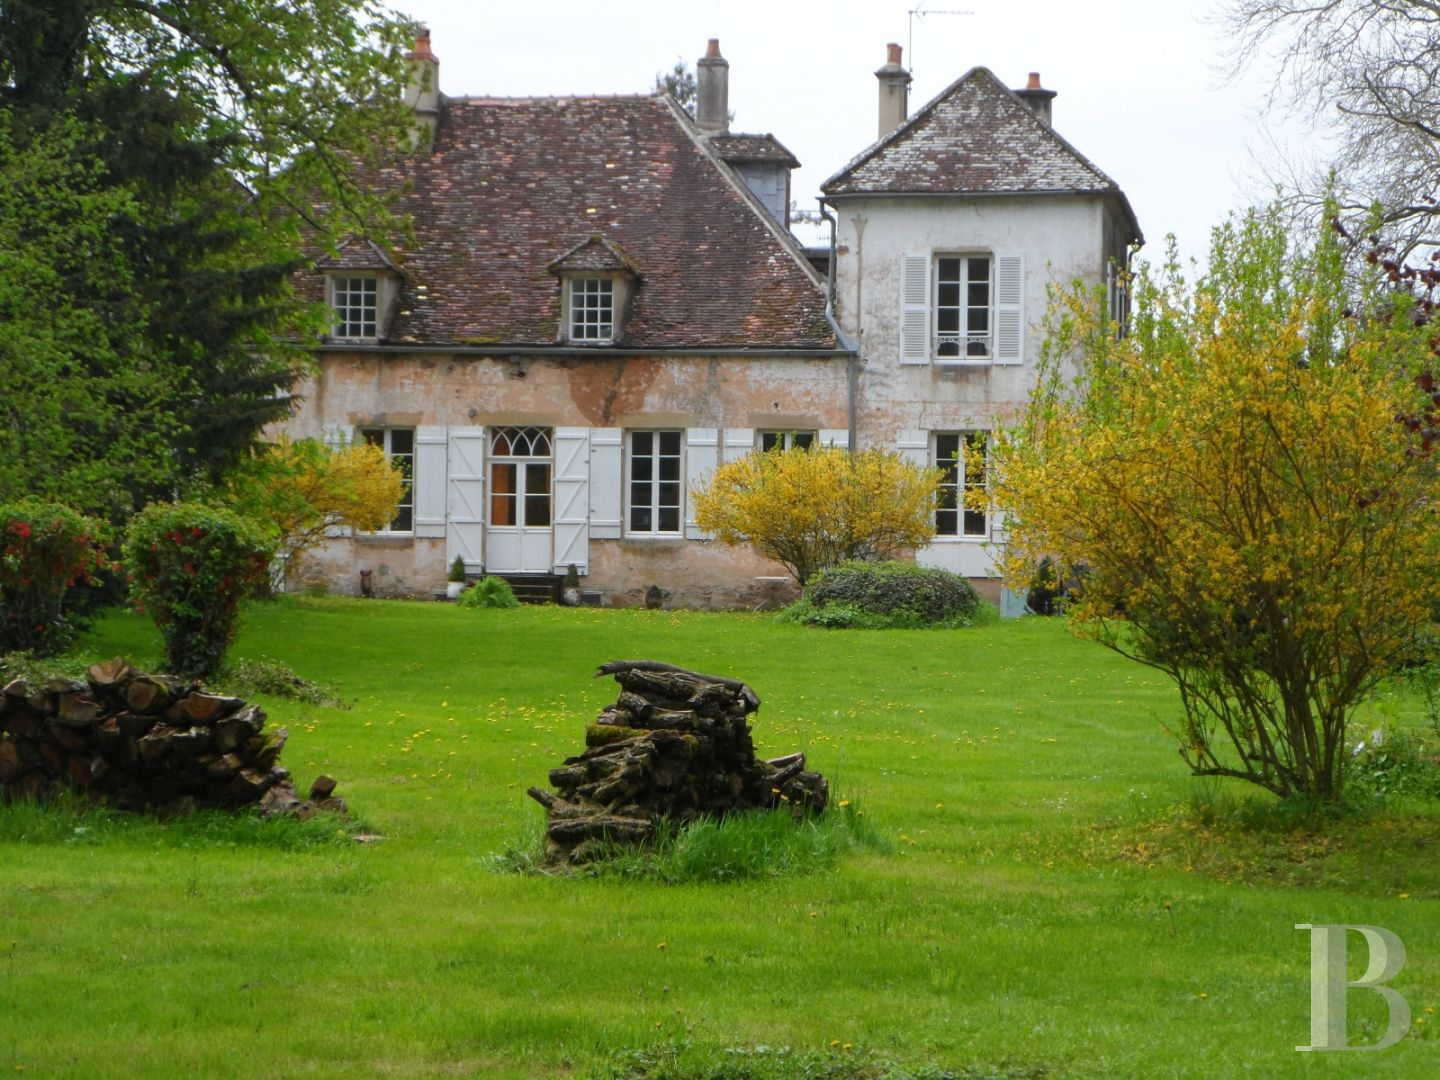 character properties France burgundy character houses - 1 zoom